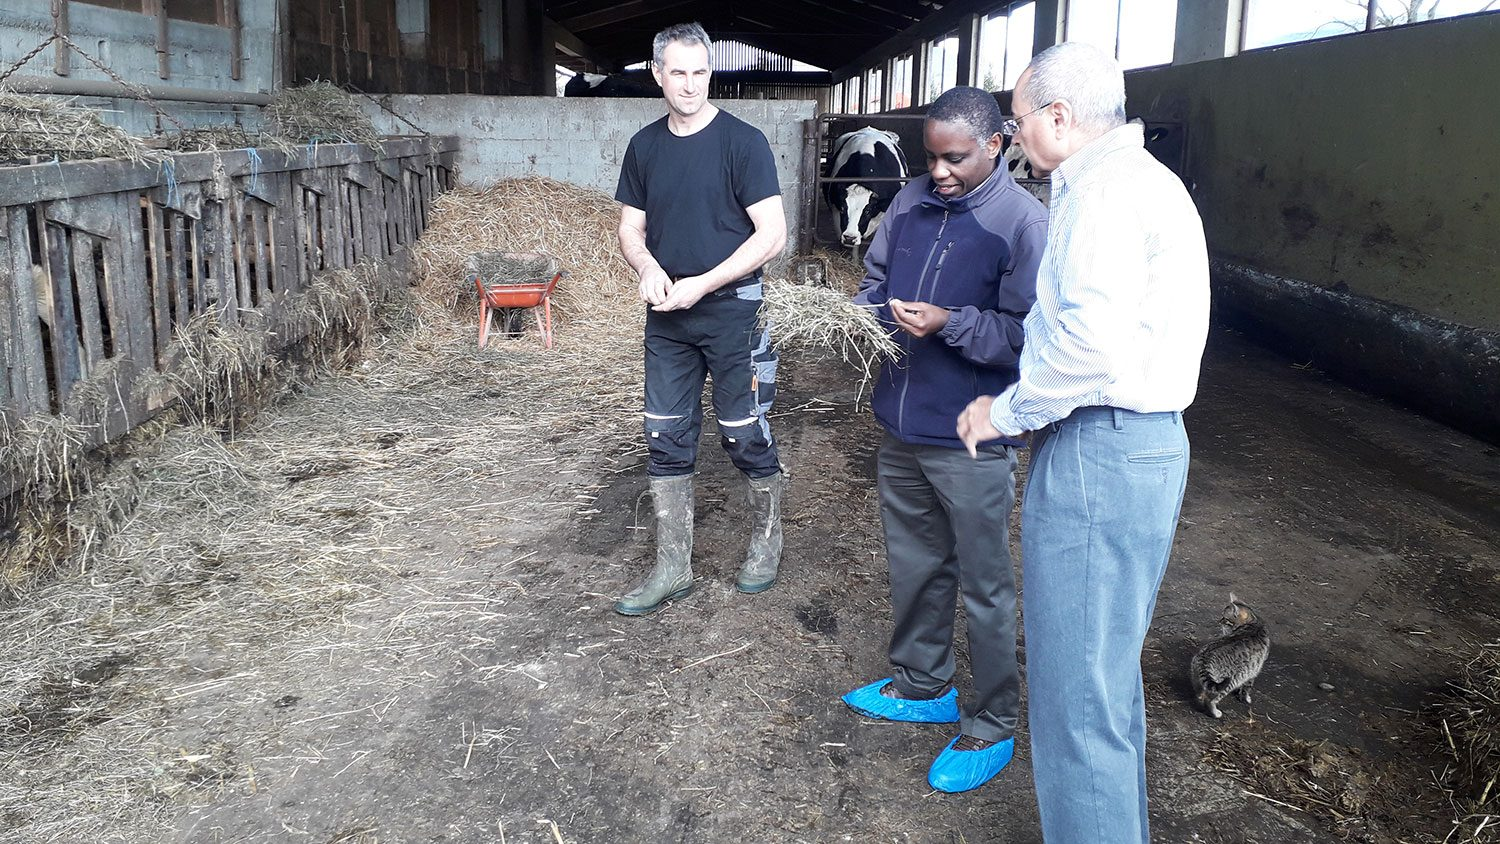 Three men standing together in a barn